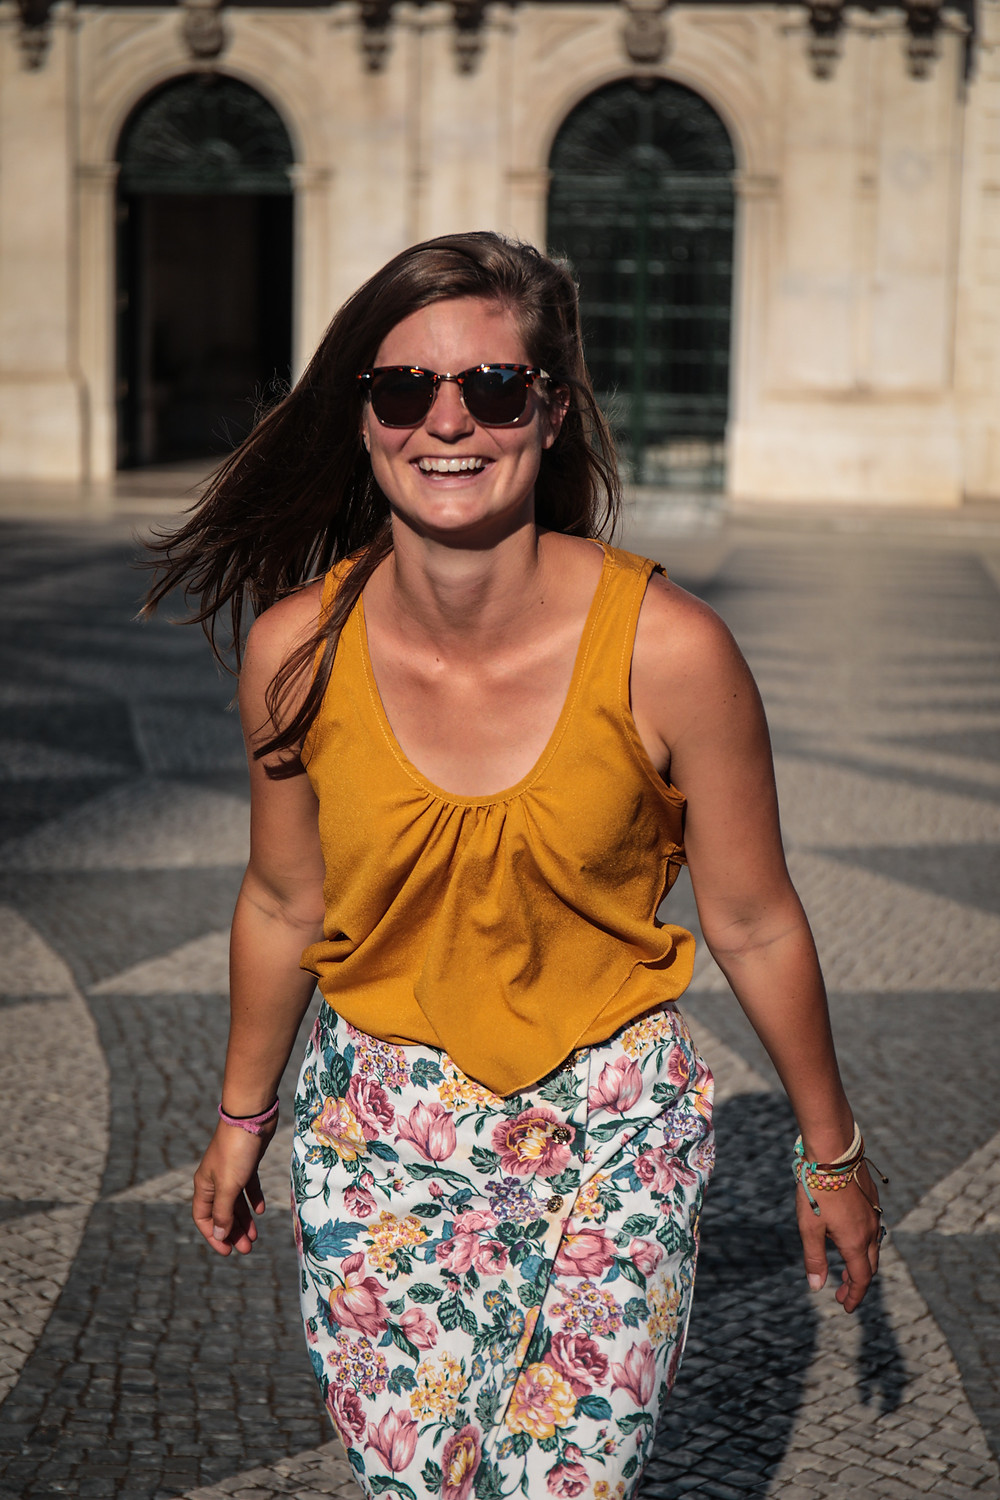 Steph Castelein from Each Day Slow laughing while traveling in Lisbon, Portugal.